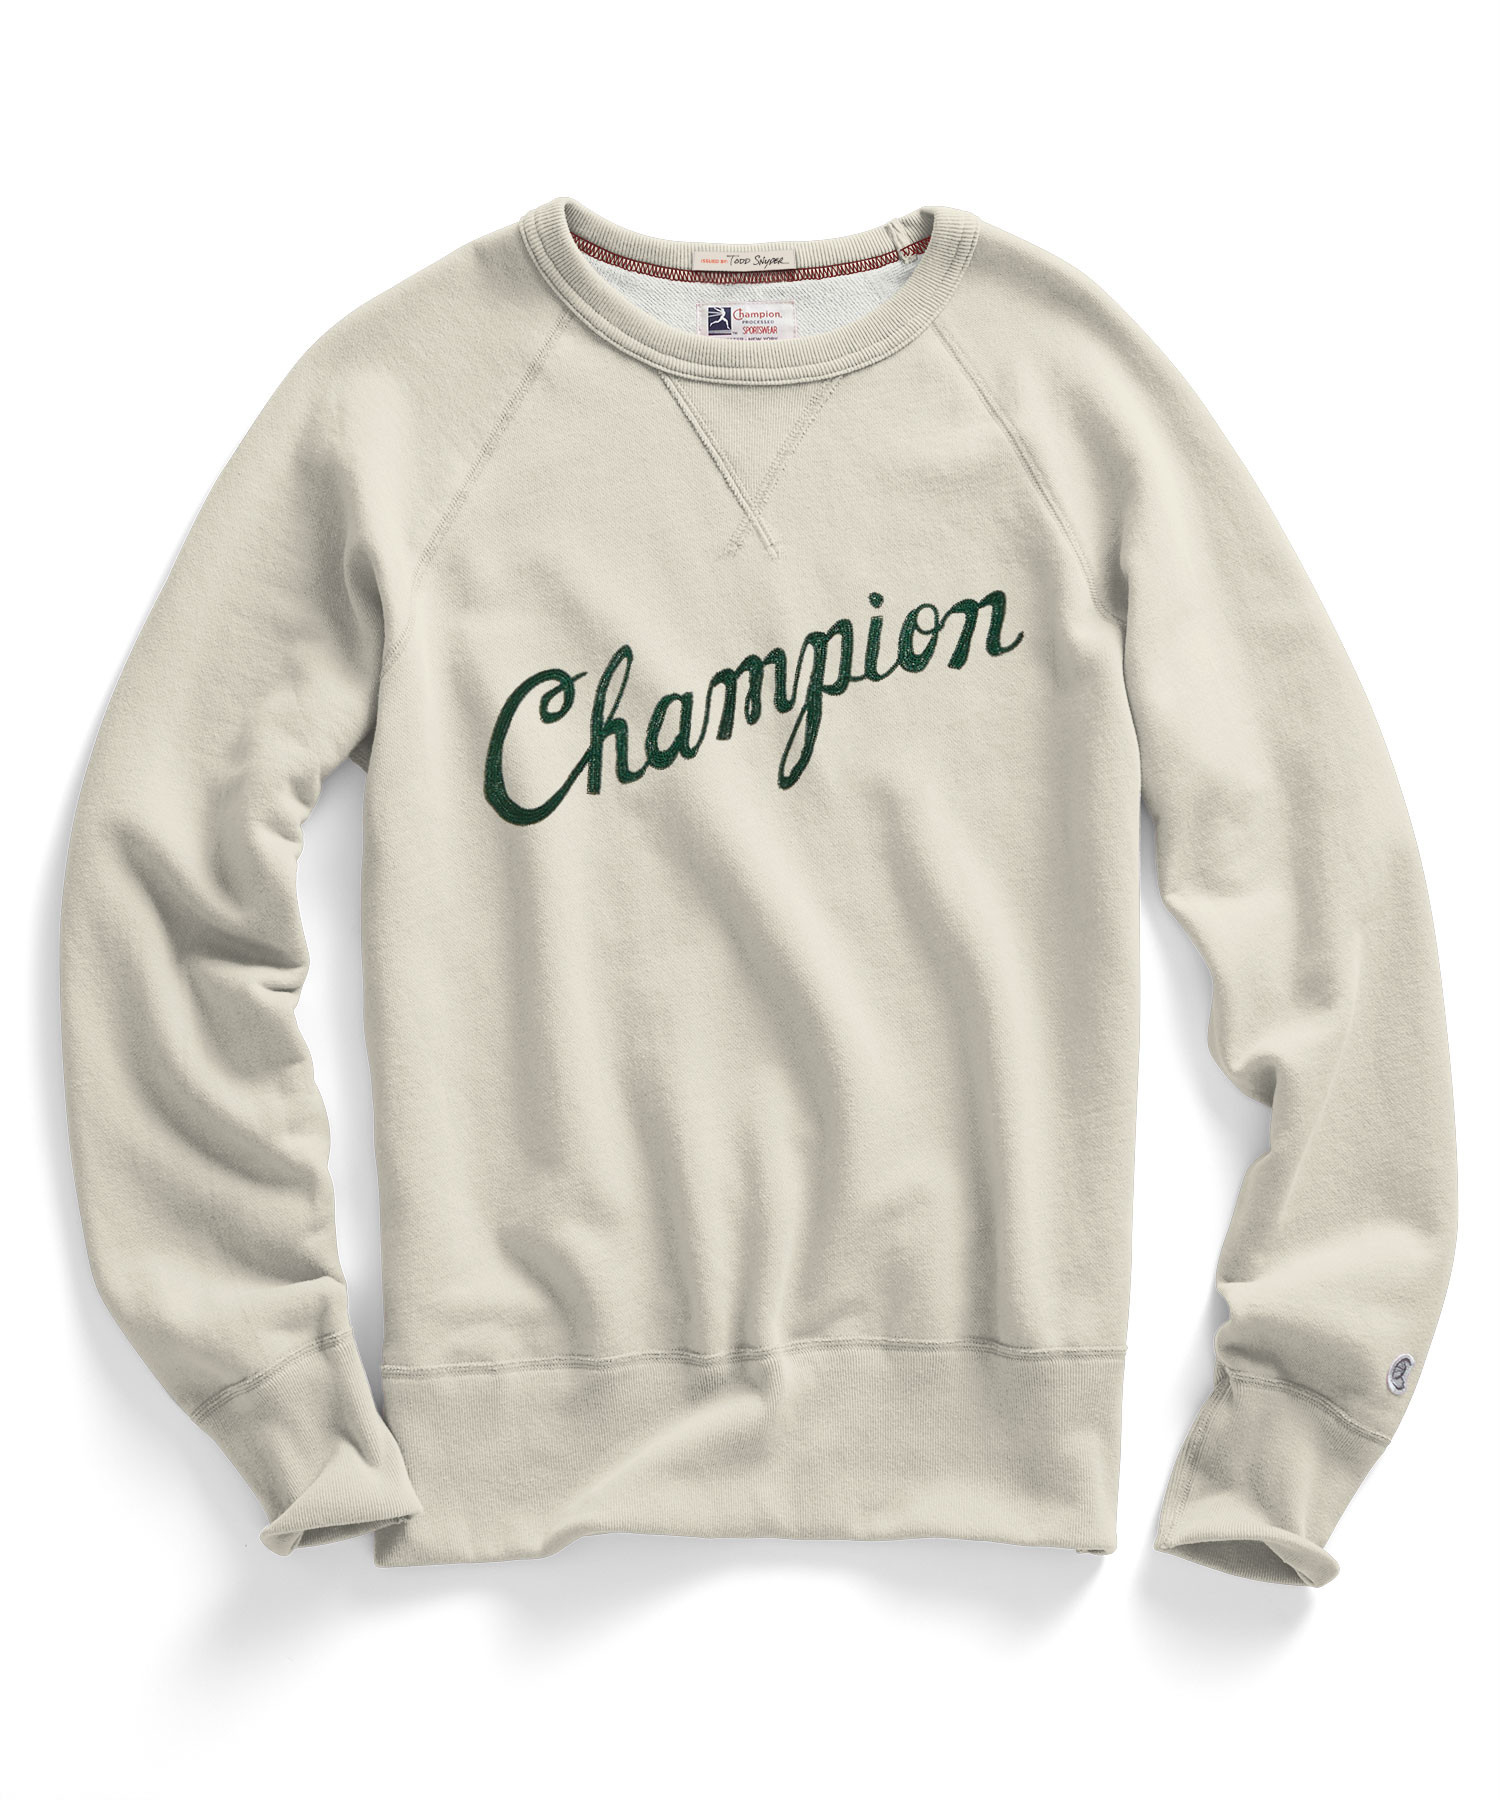 todd snyder champion embroidered sweatshirt in natural for. Black Bedroom Furniture Sets. Home Design Ideas